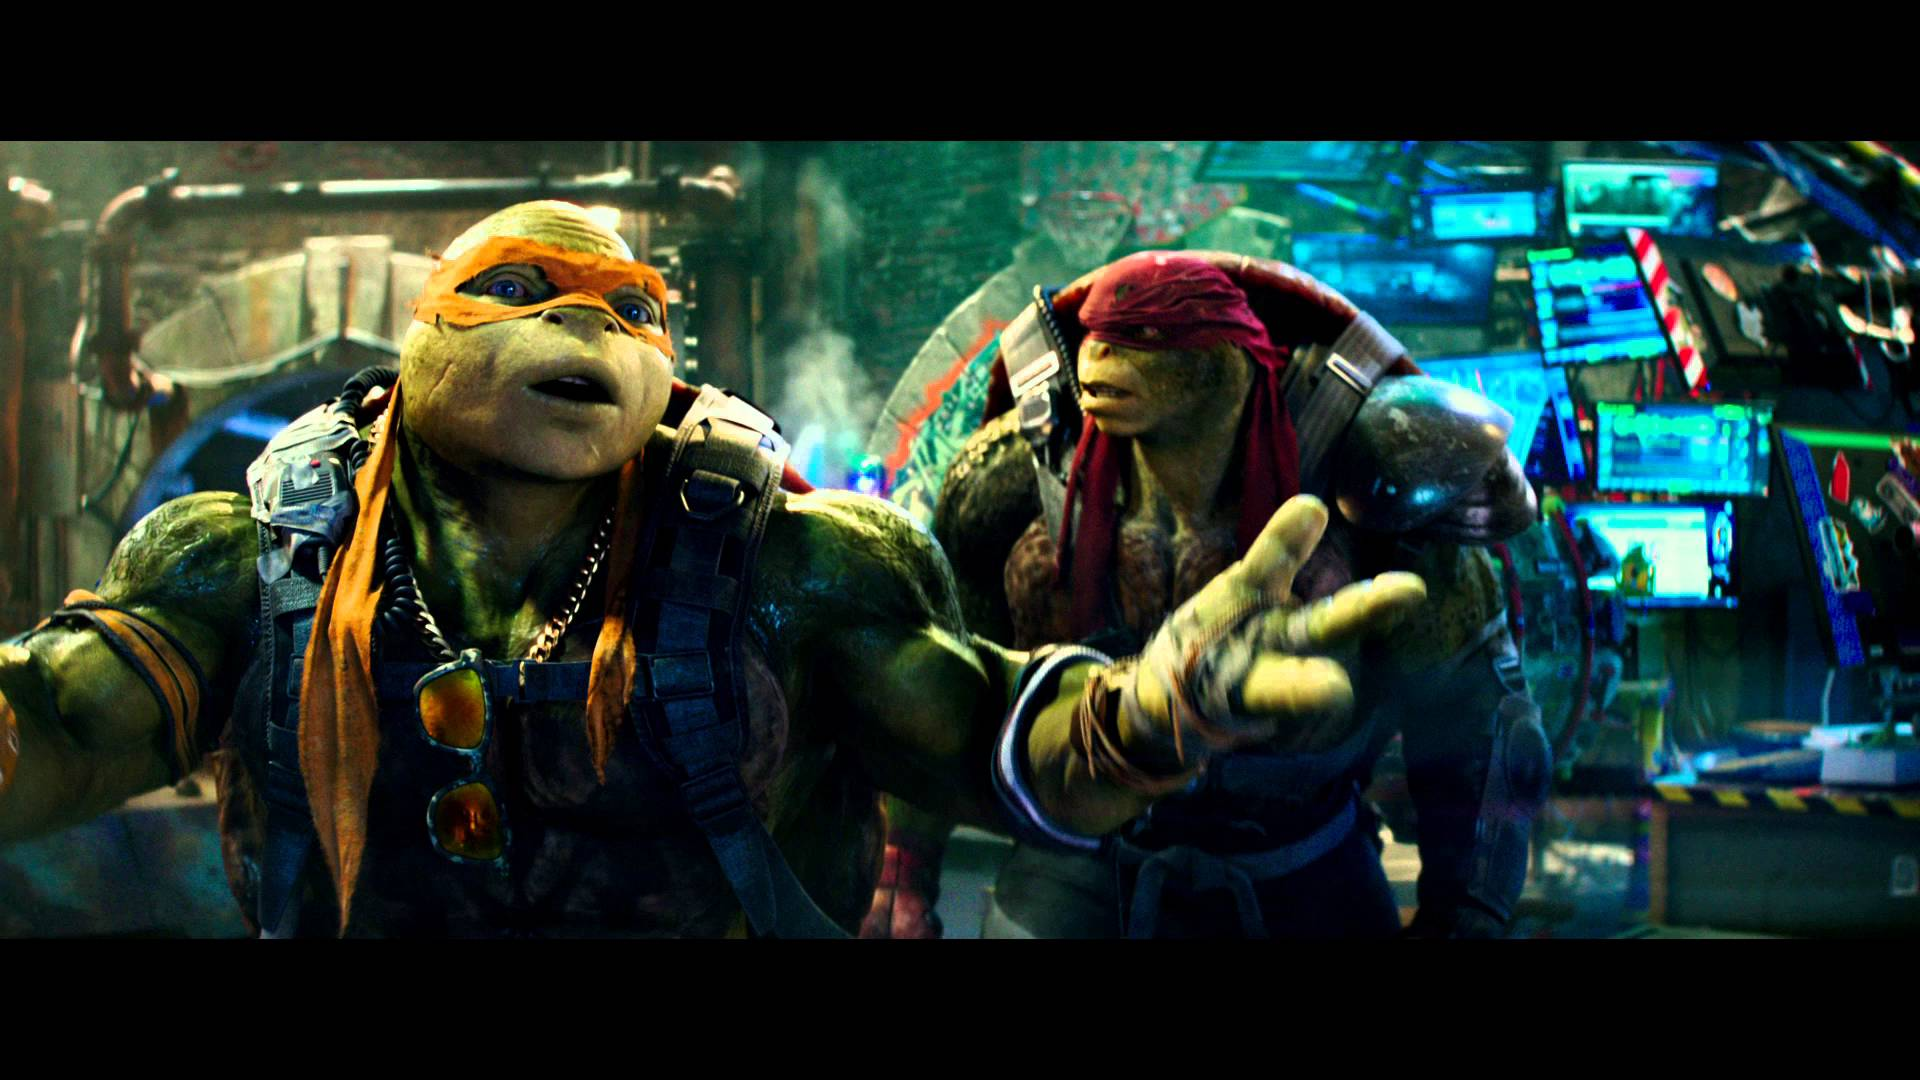 Teenage Mutant Ninja Turtles: Out of the Shadows | Big Game Spot | Paramount Pictures UK